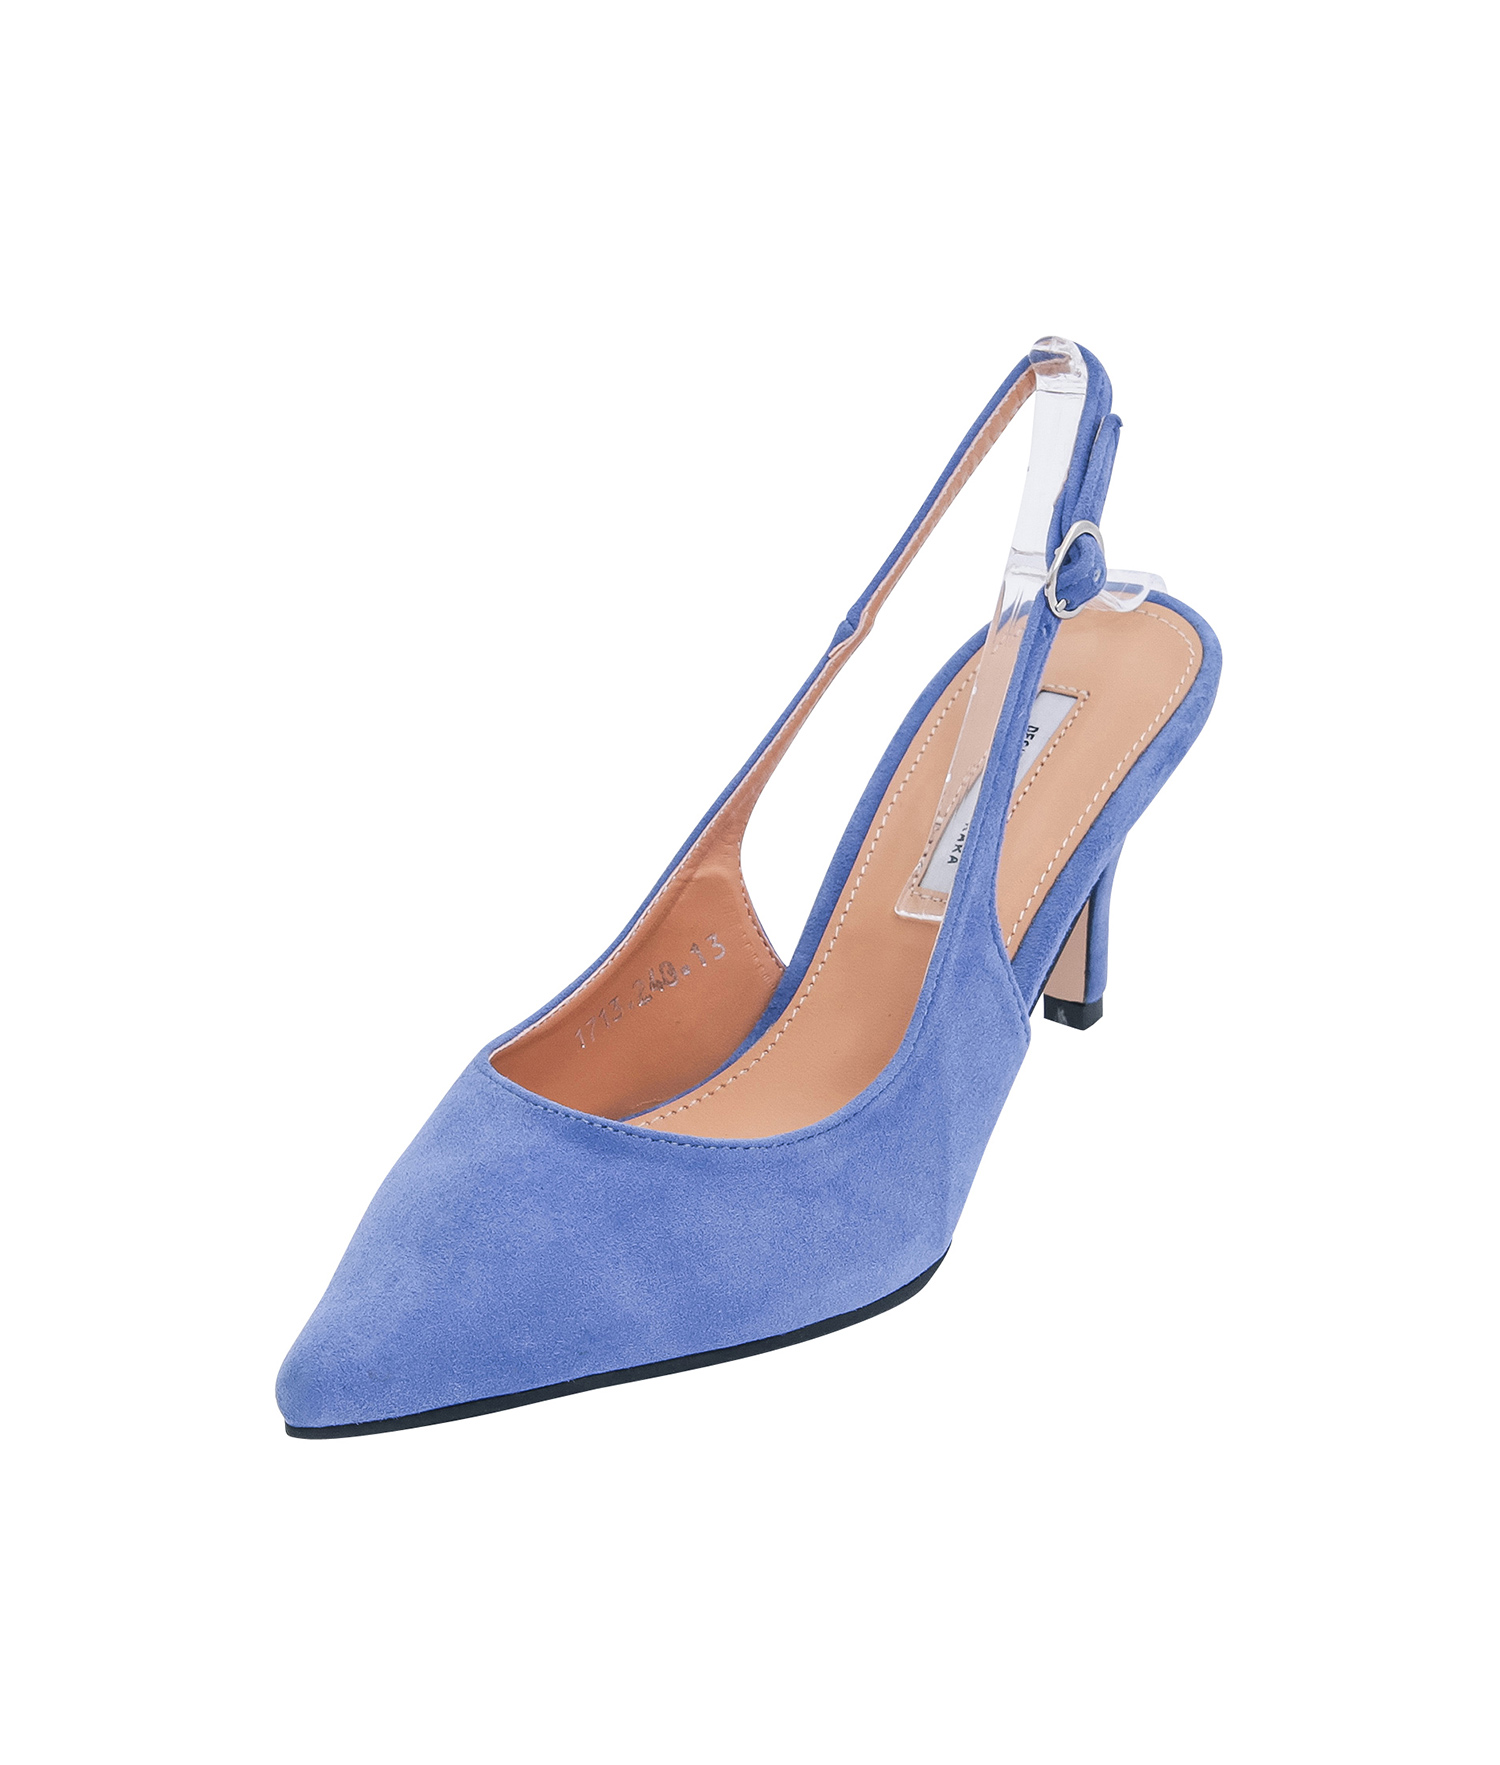 99b8c6085dc AnnaKastle Womens Pointy Closed Toe Slingbacks Blue